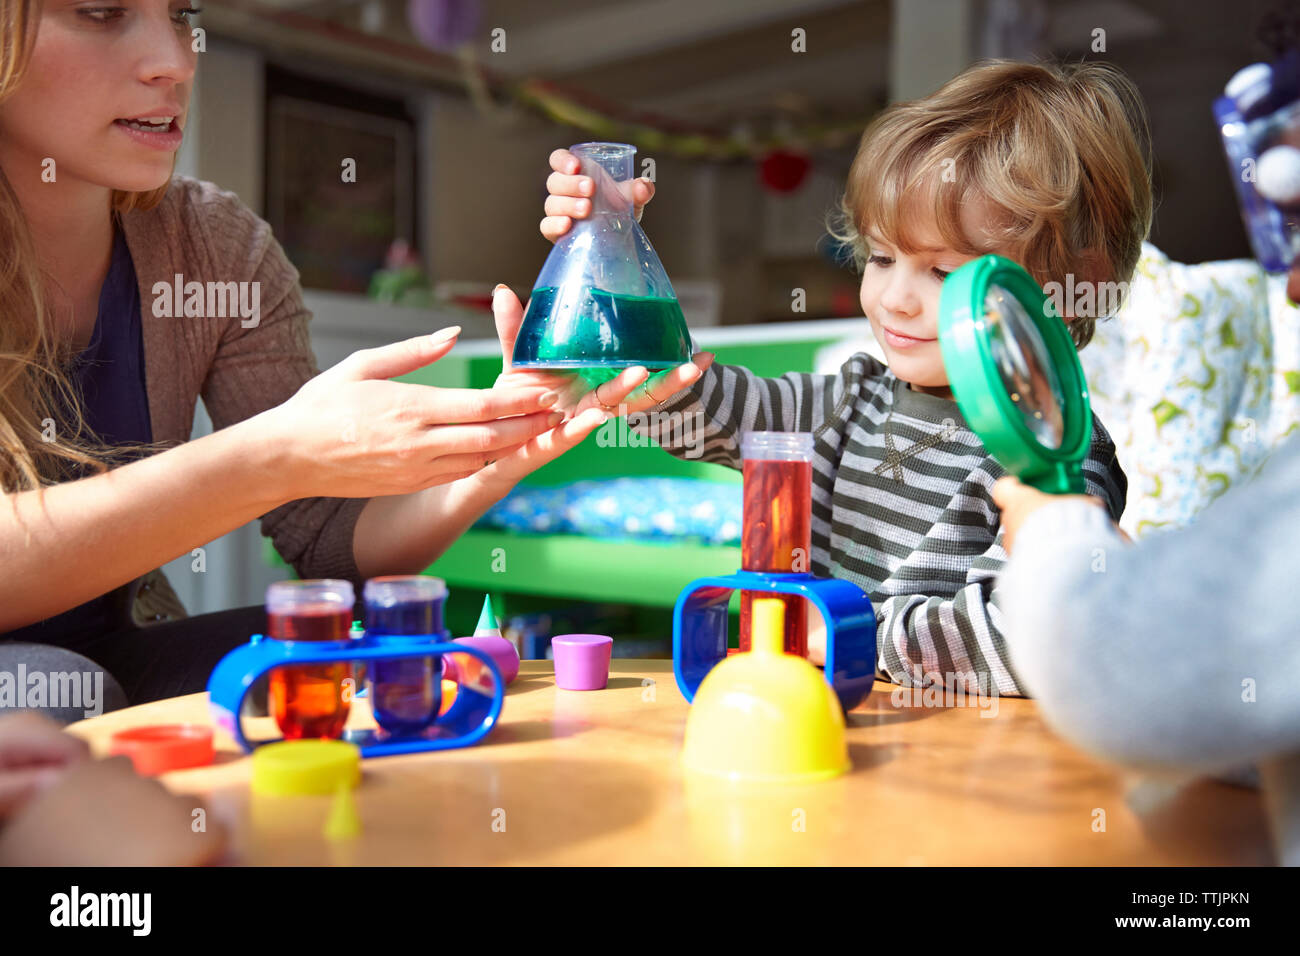 Teacher guiding students in doing science experiment at preschool Stock Photo